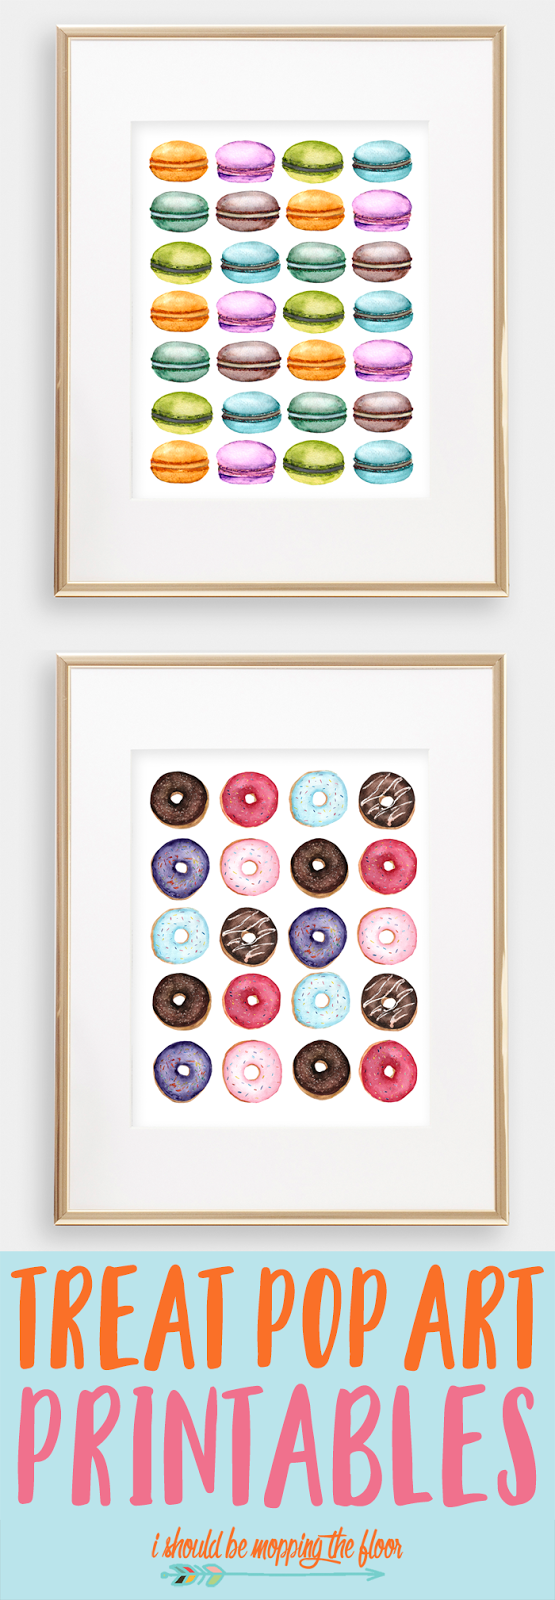 These Donut and Macaron Printables are perfect for your kitchen decor!